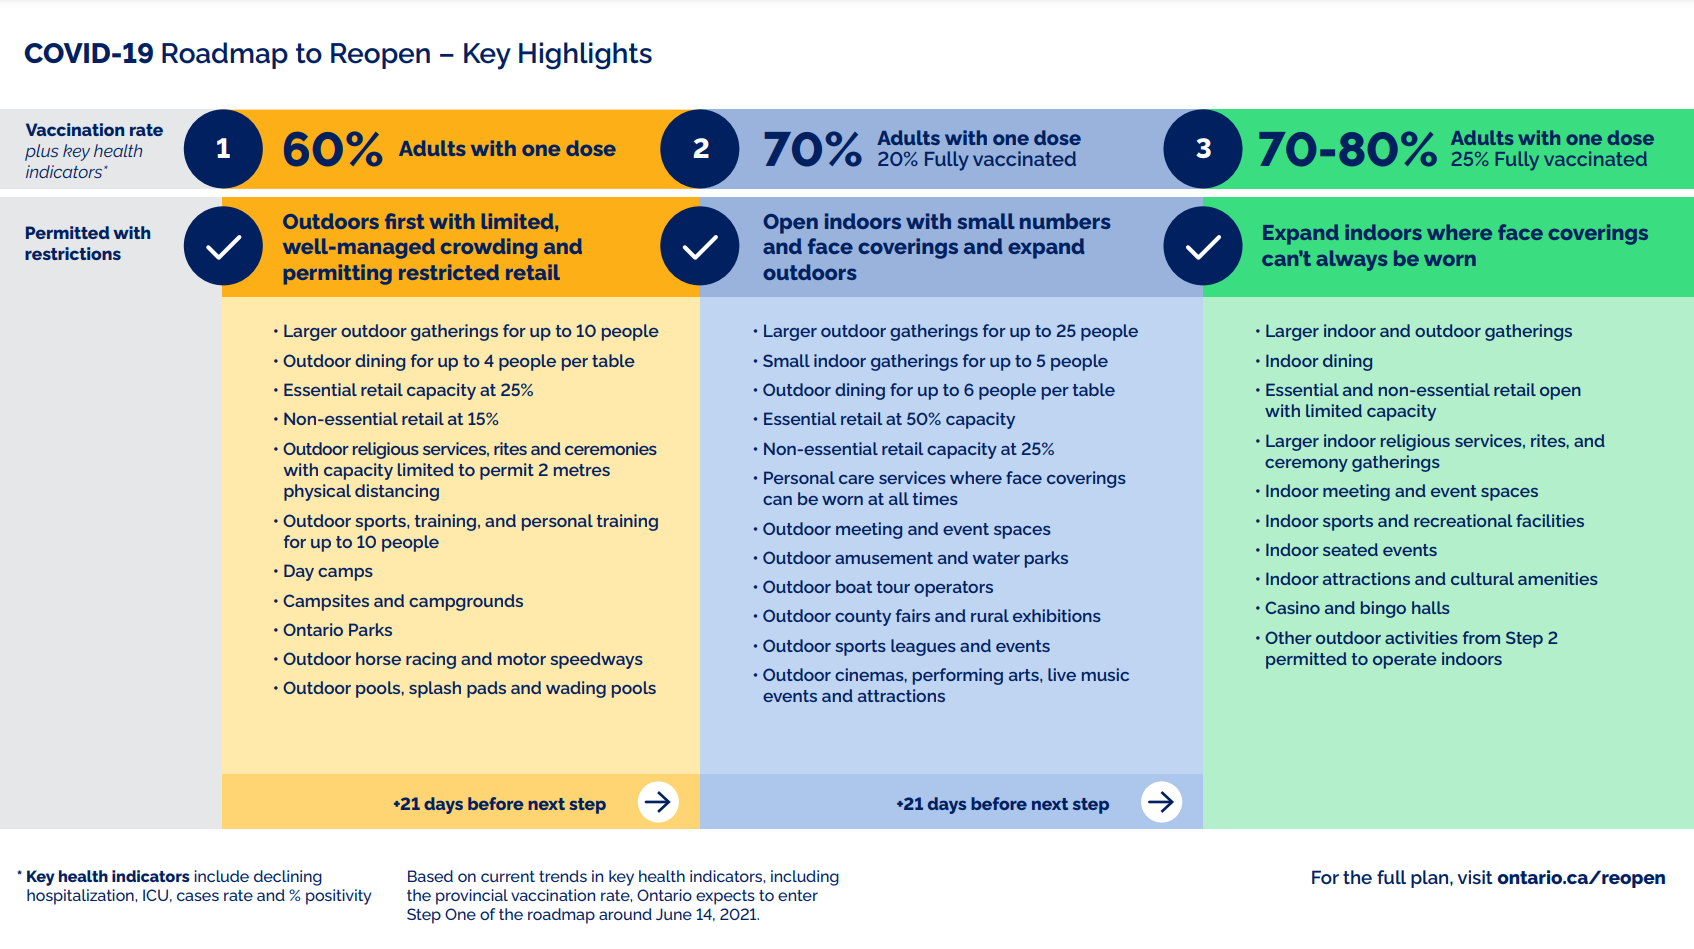 COVID-19 Roadmap to Reopen – Key Highlights. Source: Province of Ontario